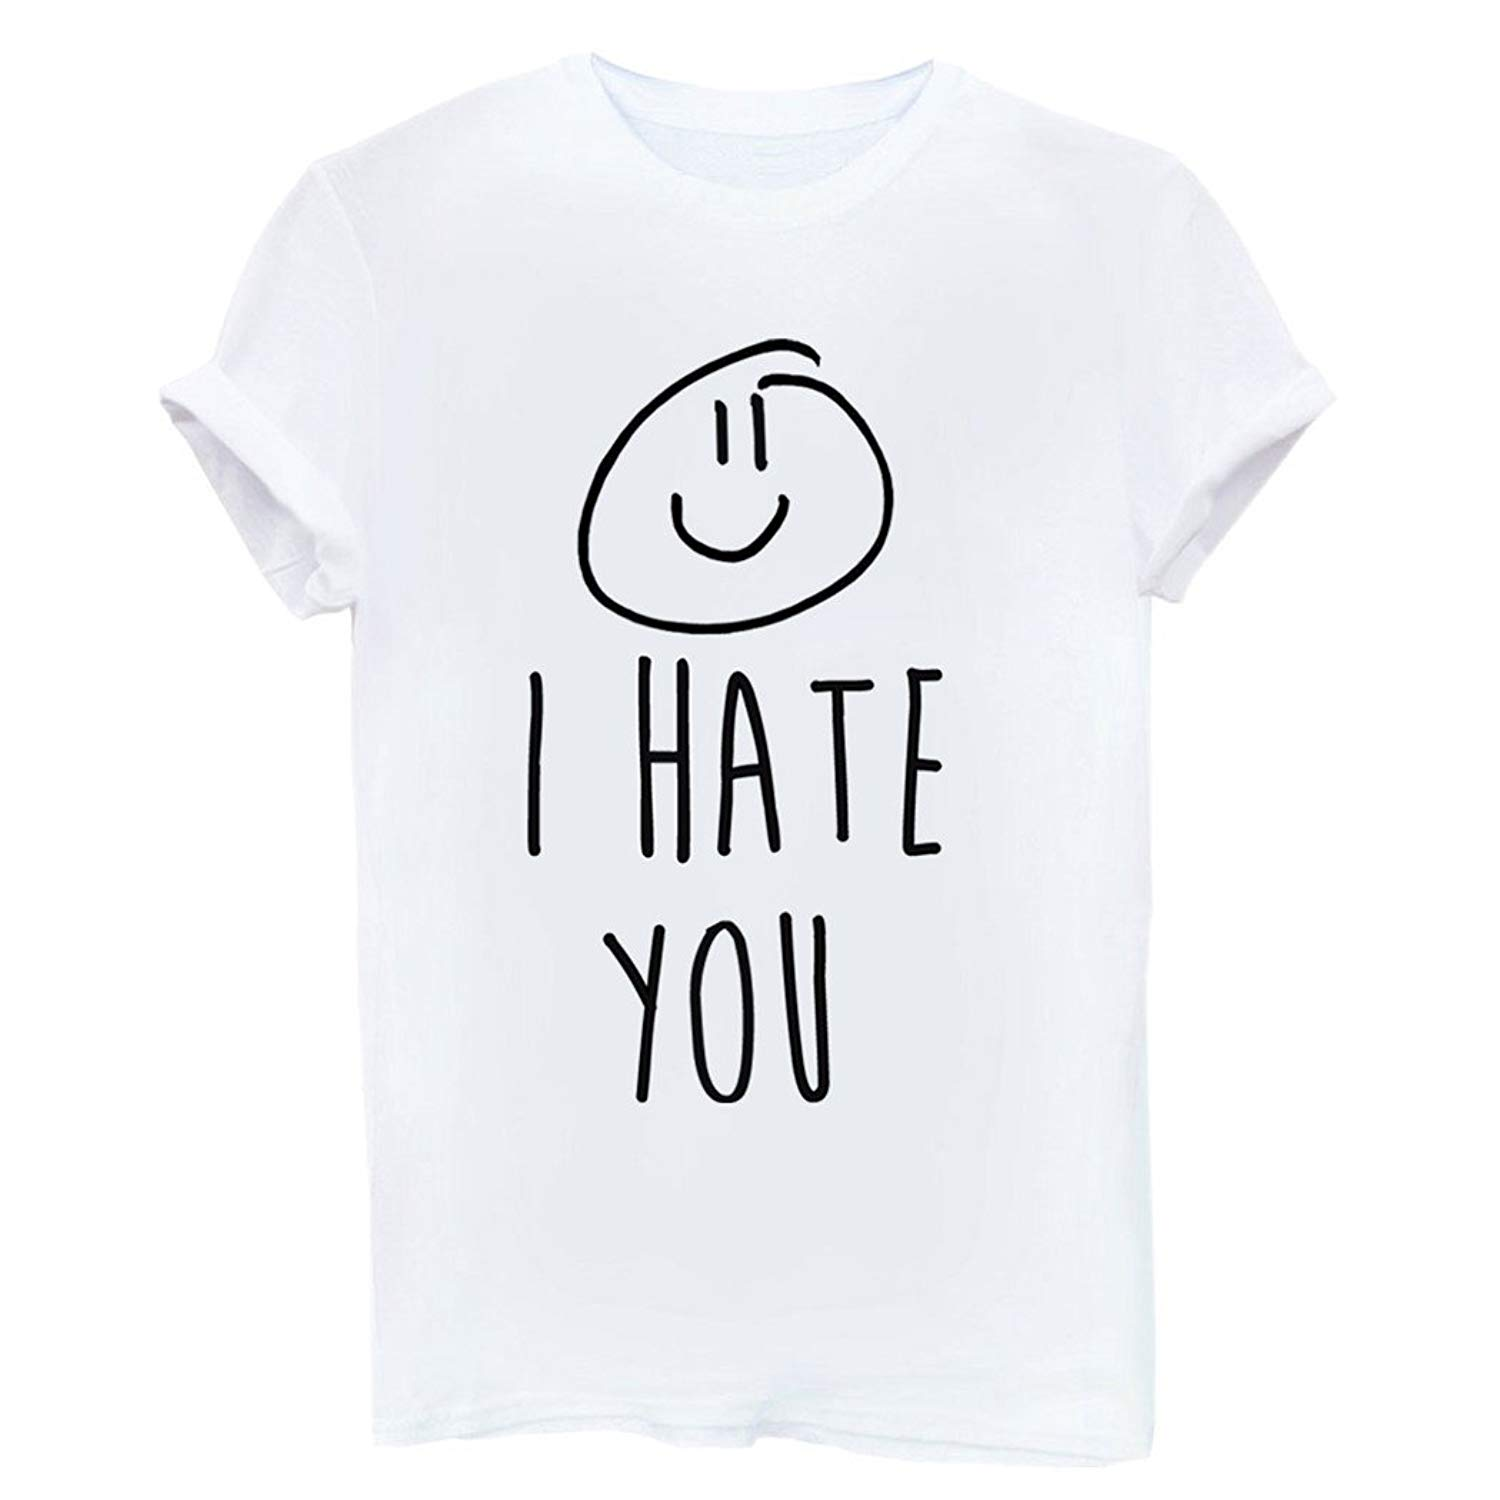 8b5a9cc04f4be1 Get Quotations · LOOKFACE Women Funny Graphic T Shirt Cute Short Sleeve Tees  Tops